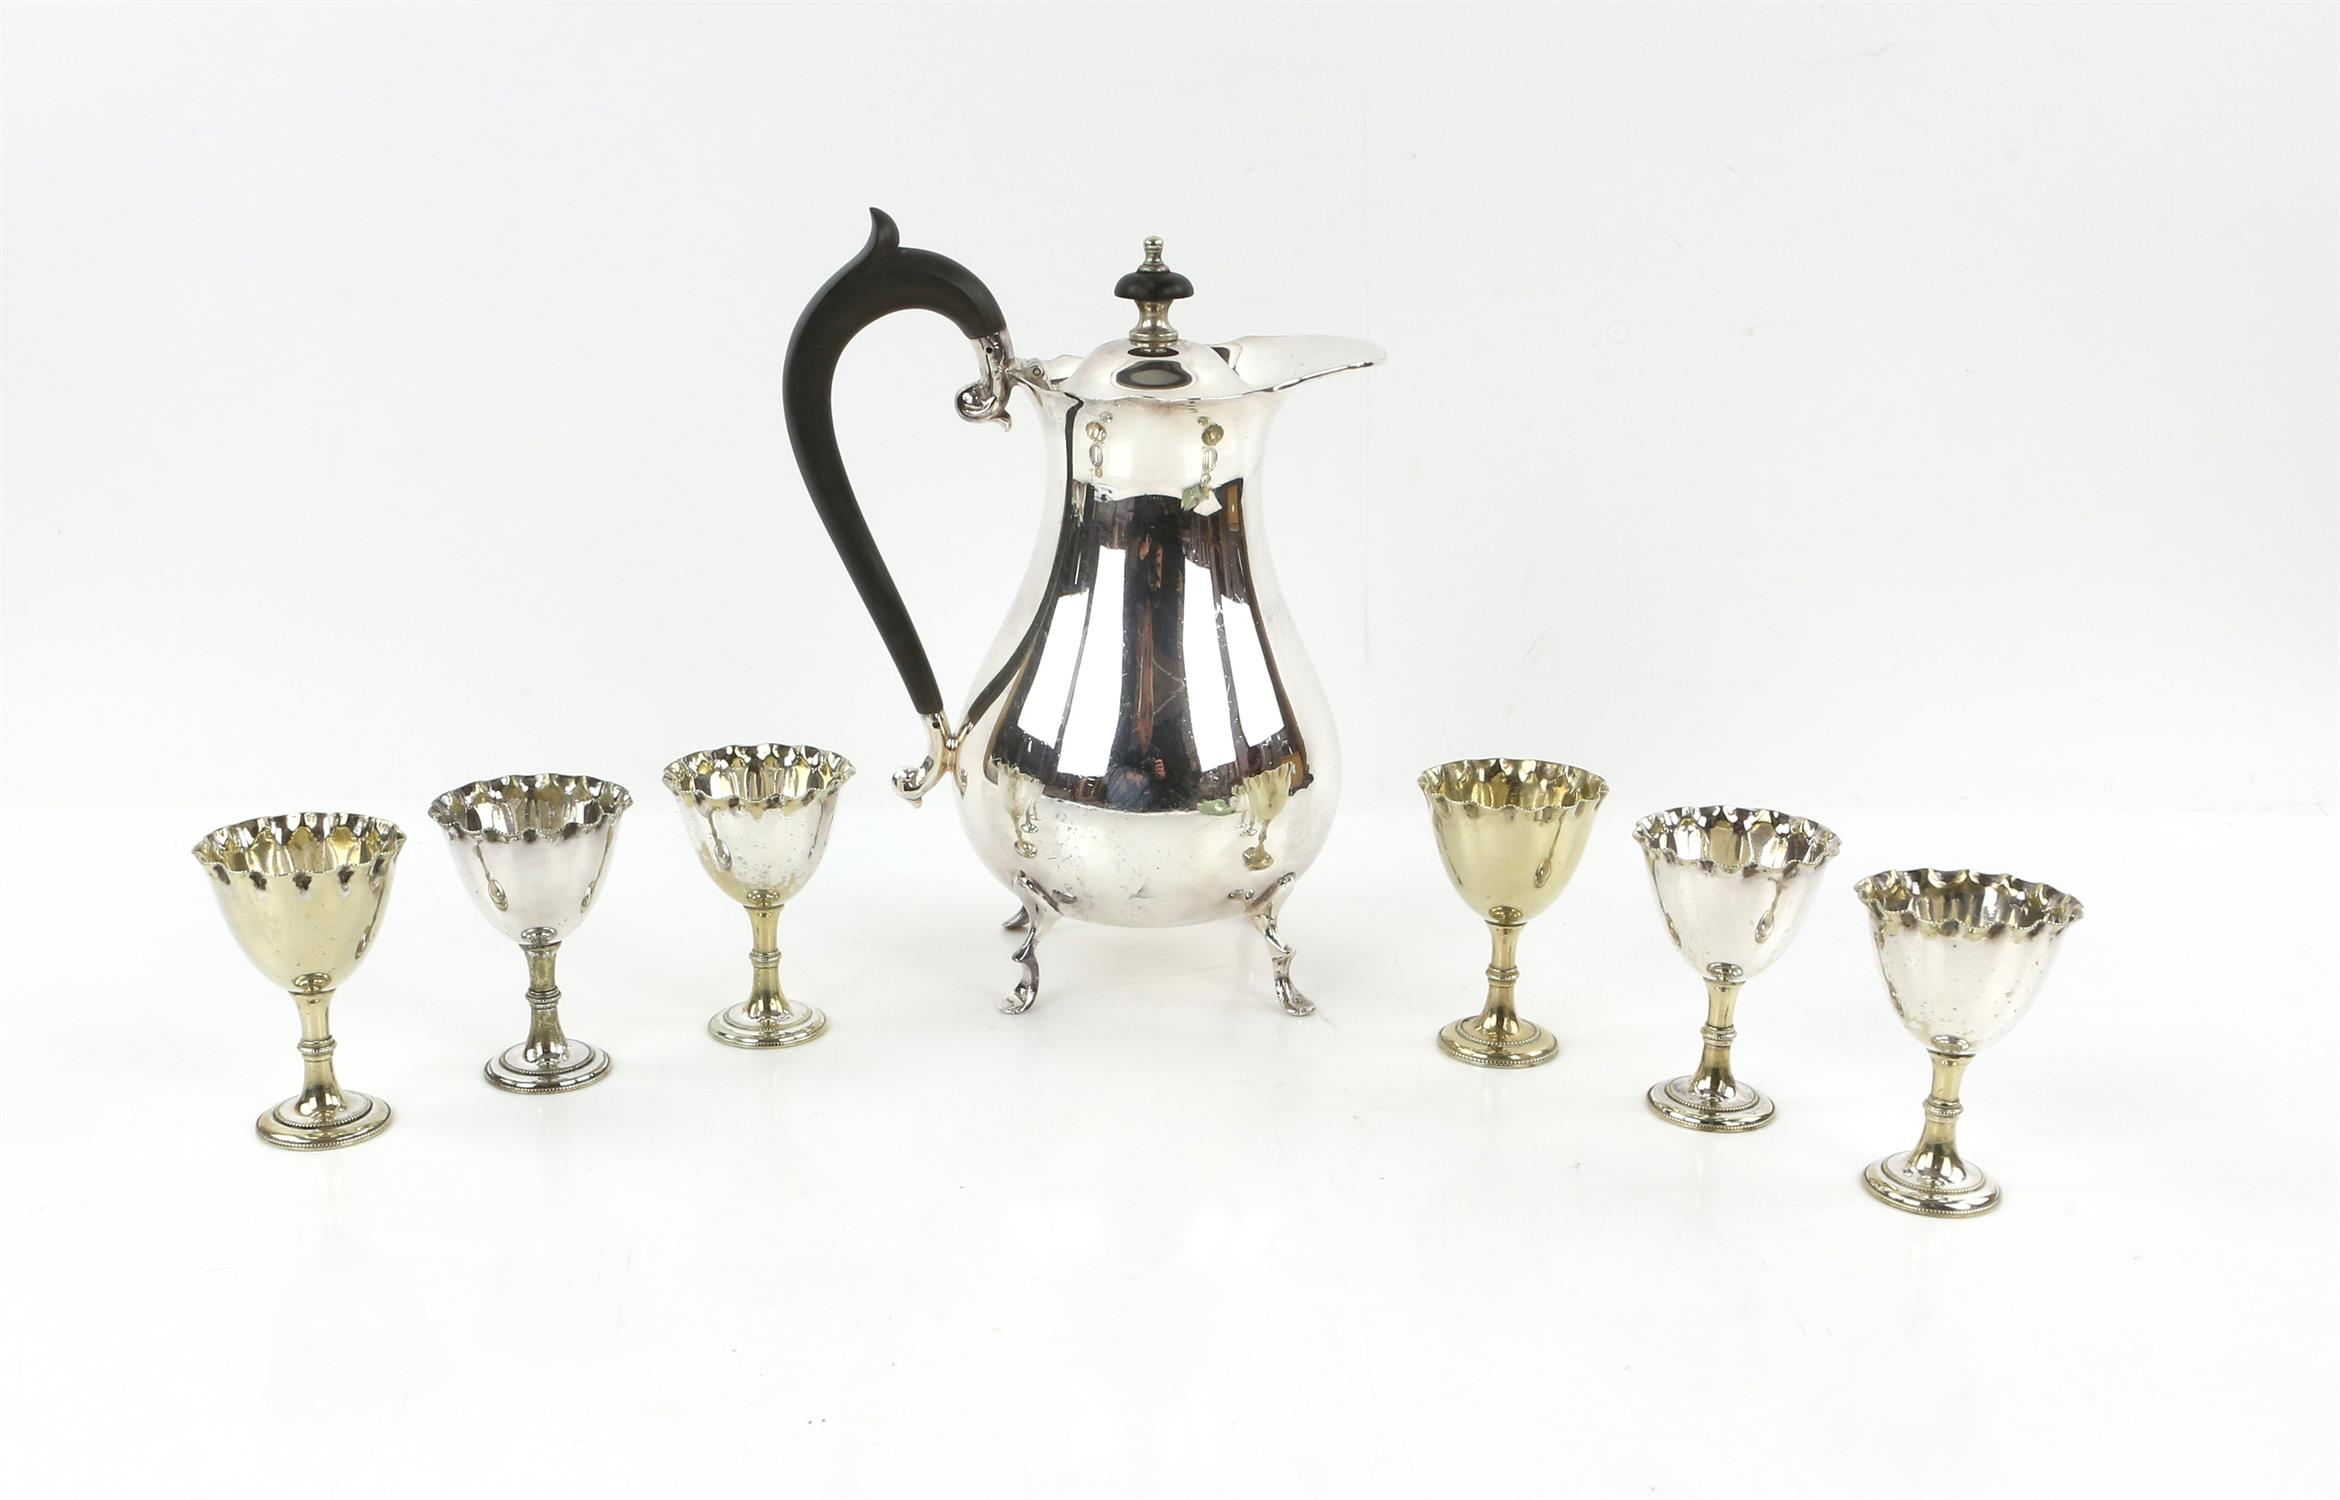 Pair of three light silver plated candelabra by Elkington & Co. ,fruit stand, water jug, egg cups, - Image 3 of 5